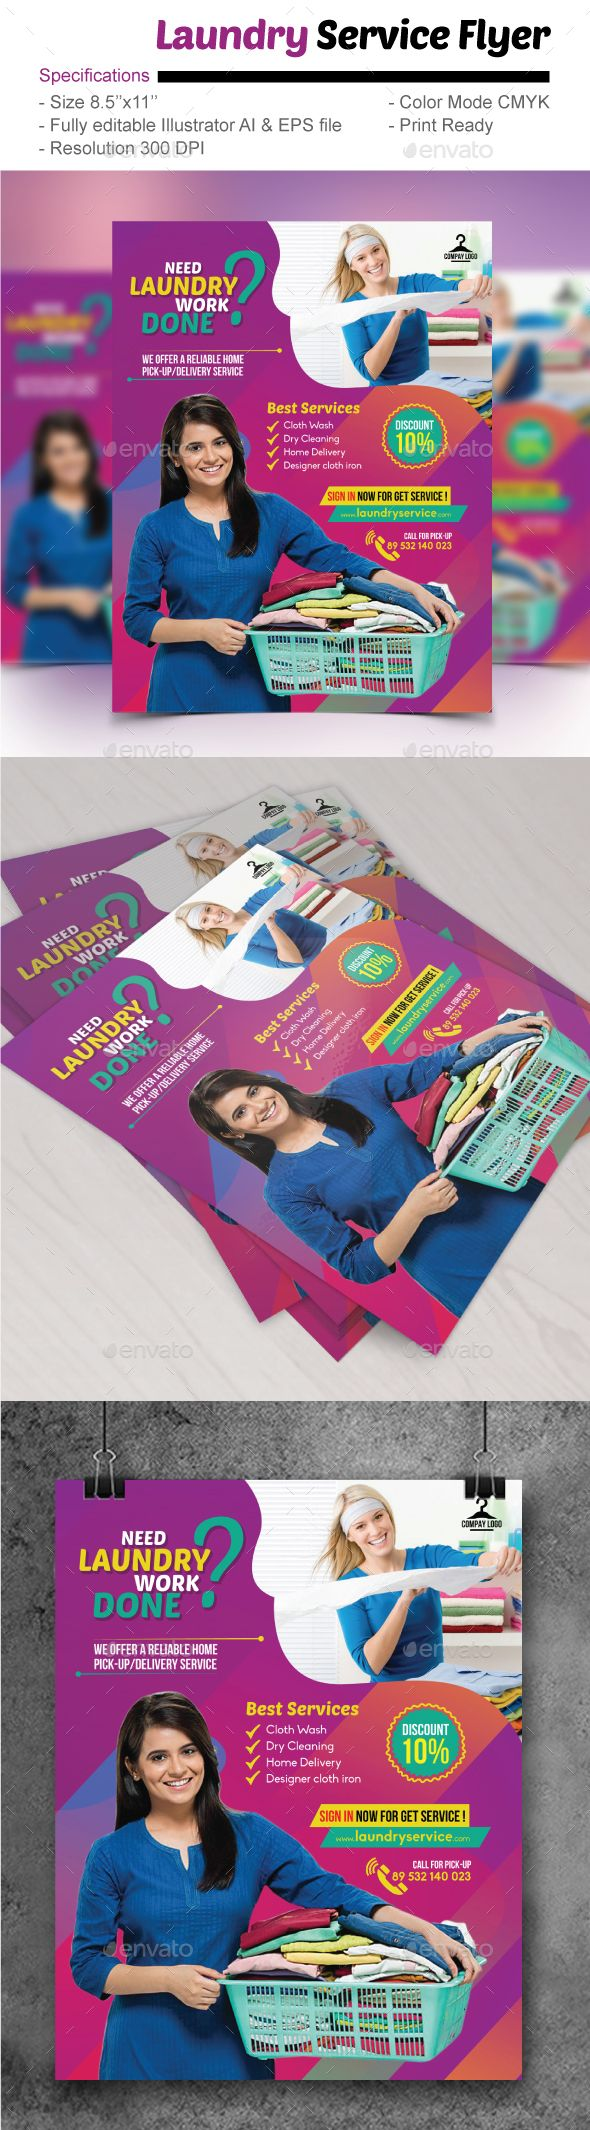 25 best laundry flyer images on pinterest laundry service font laundry service flyer by designstation laundry service flyer editable specifications size pronofoot35fo Image collections